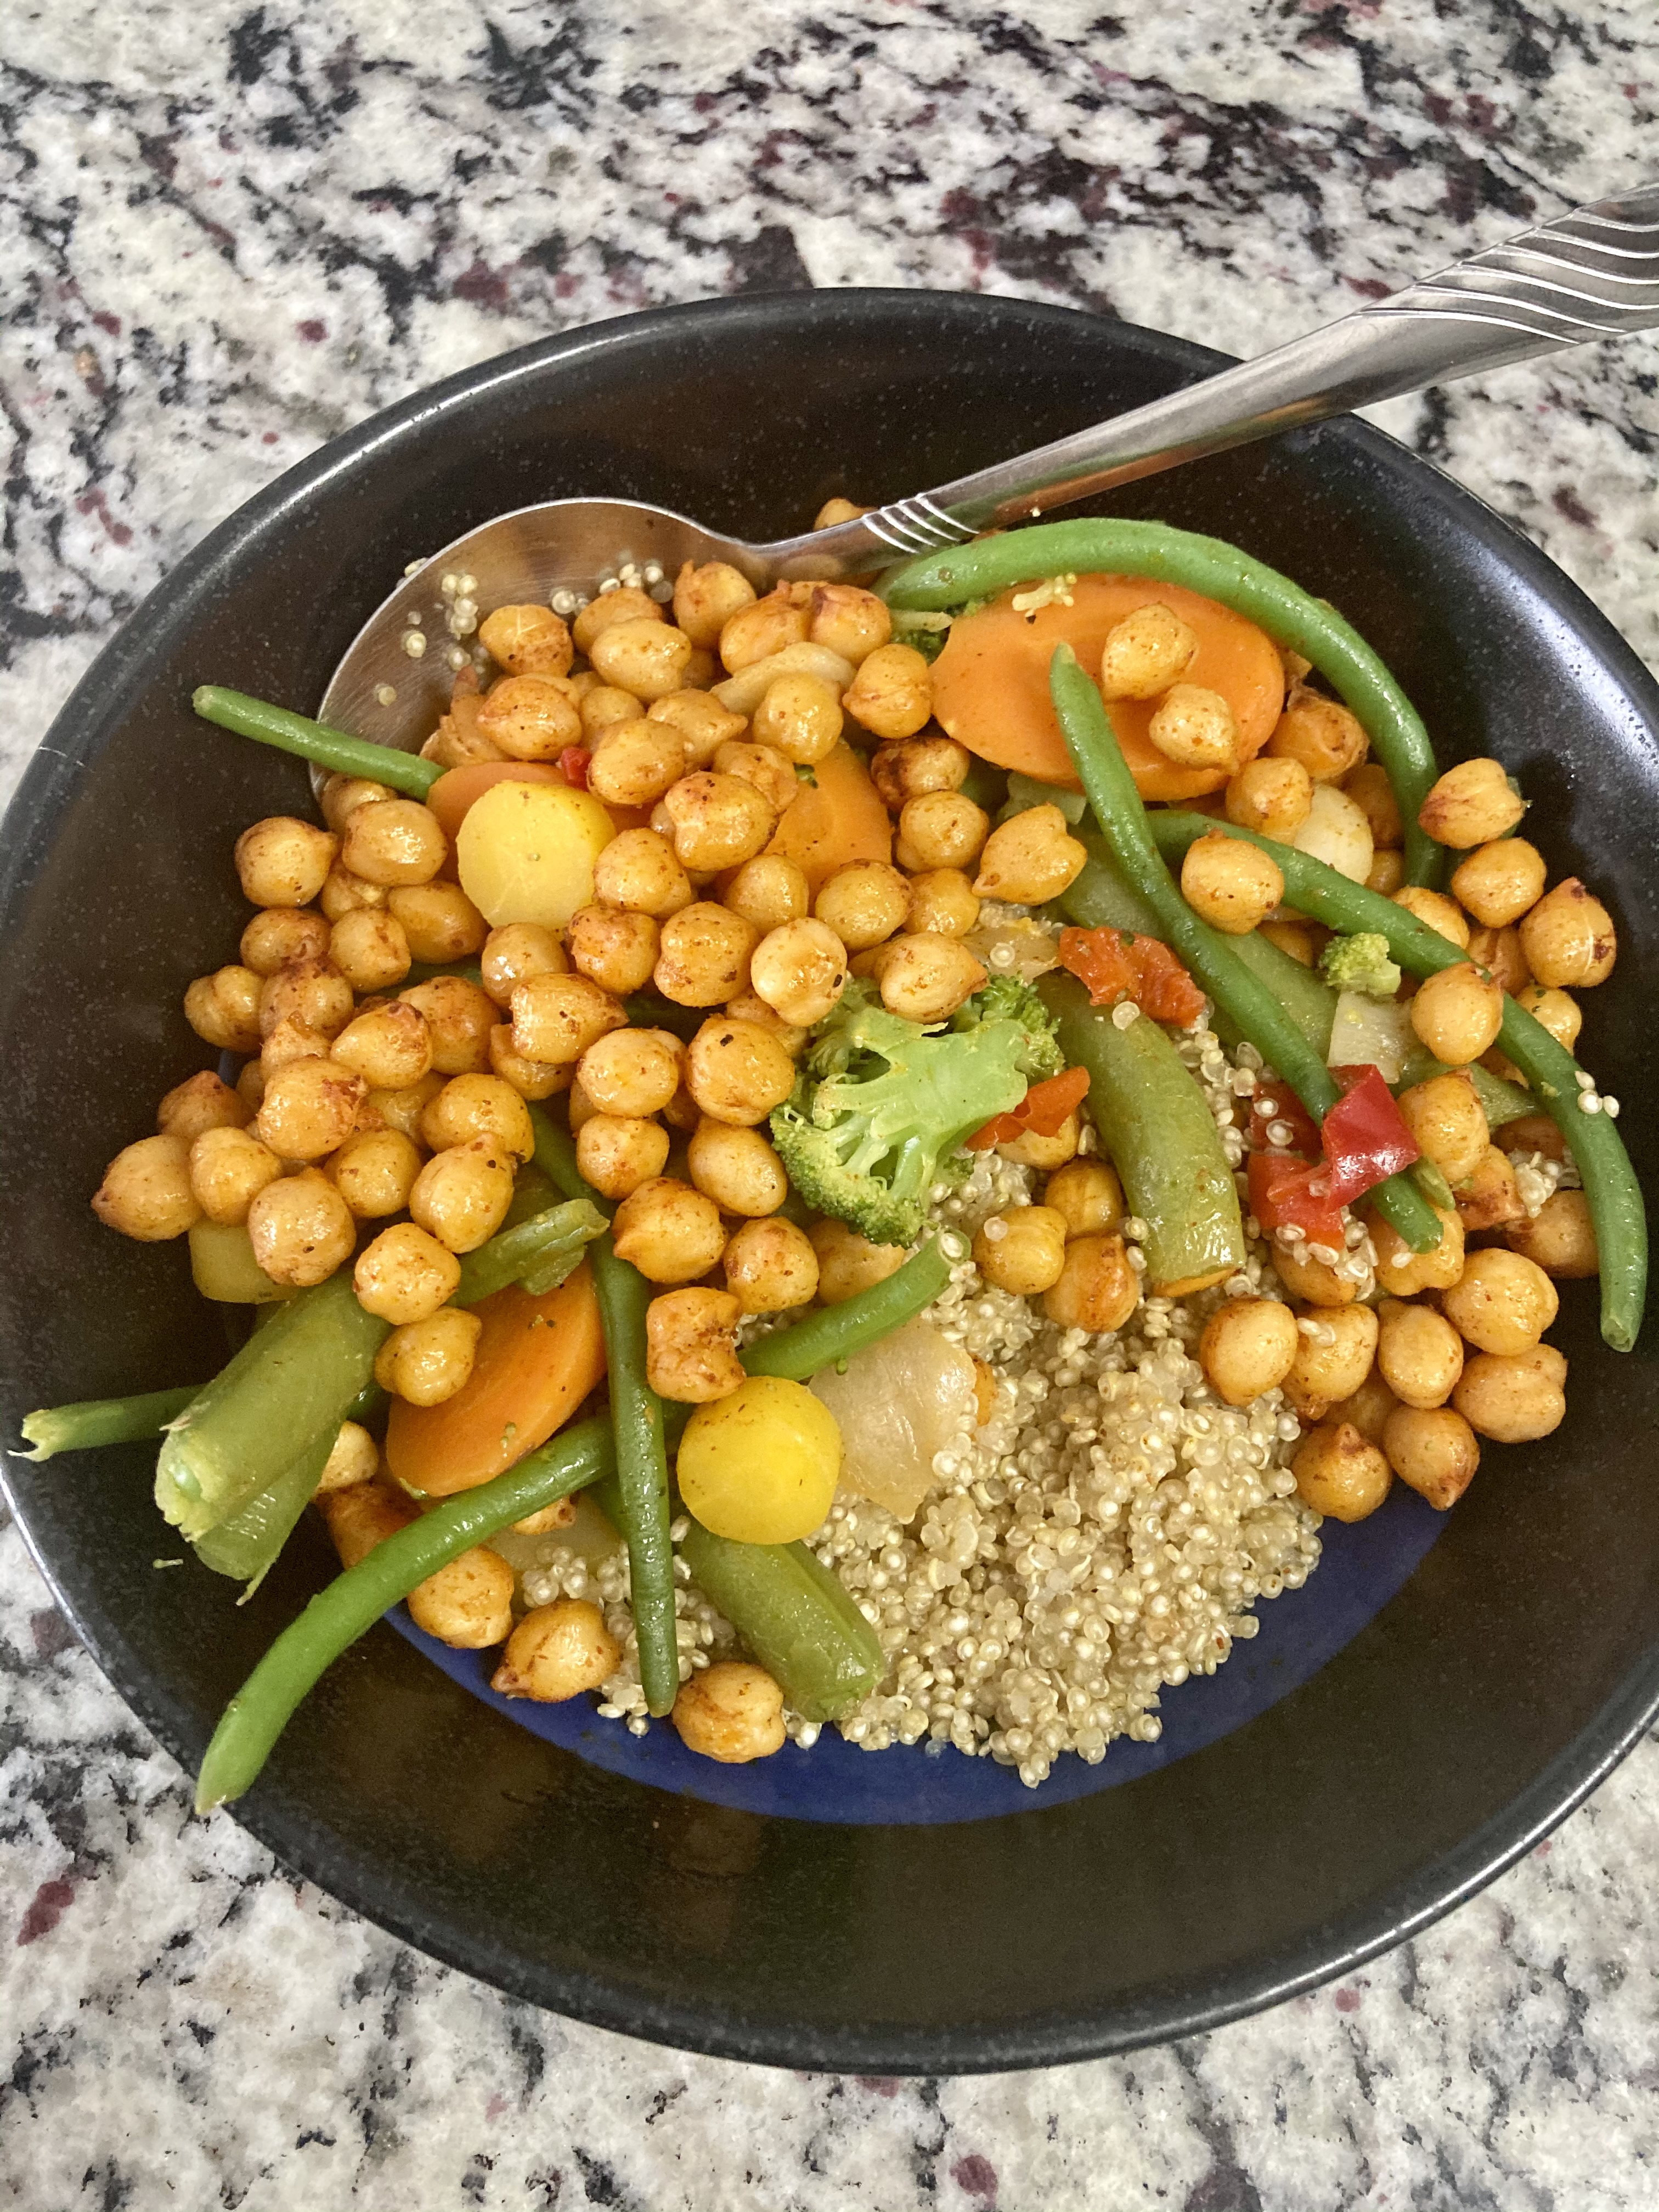 quinoa bowl with roasted chickpeas and veggies.